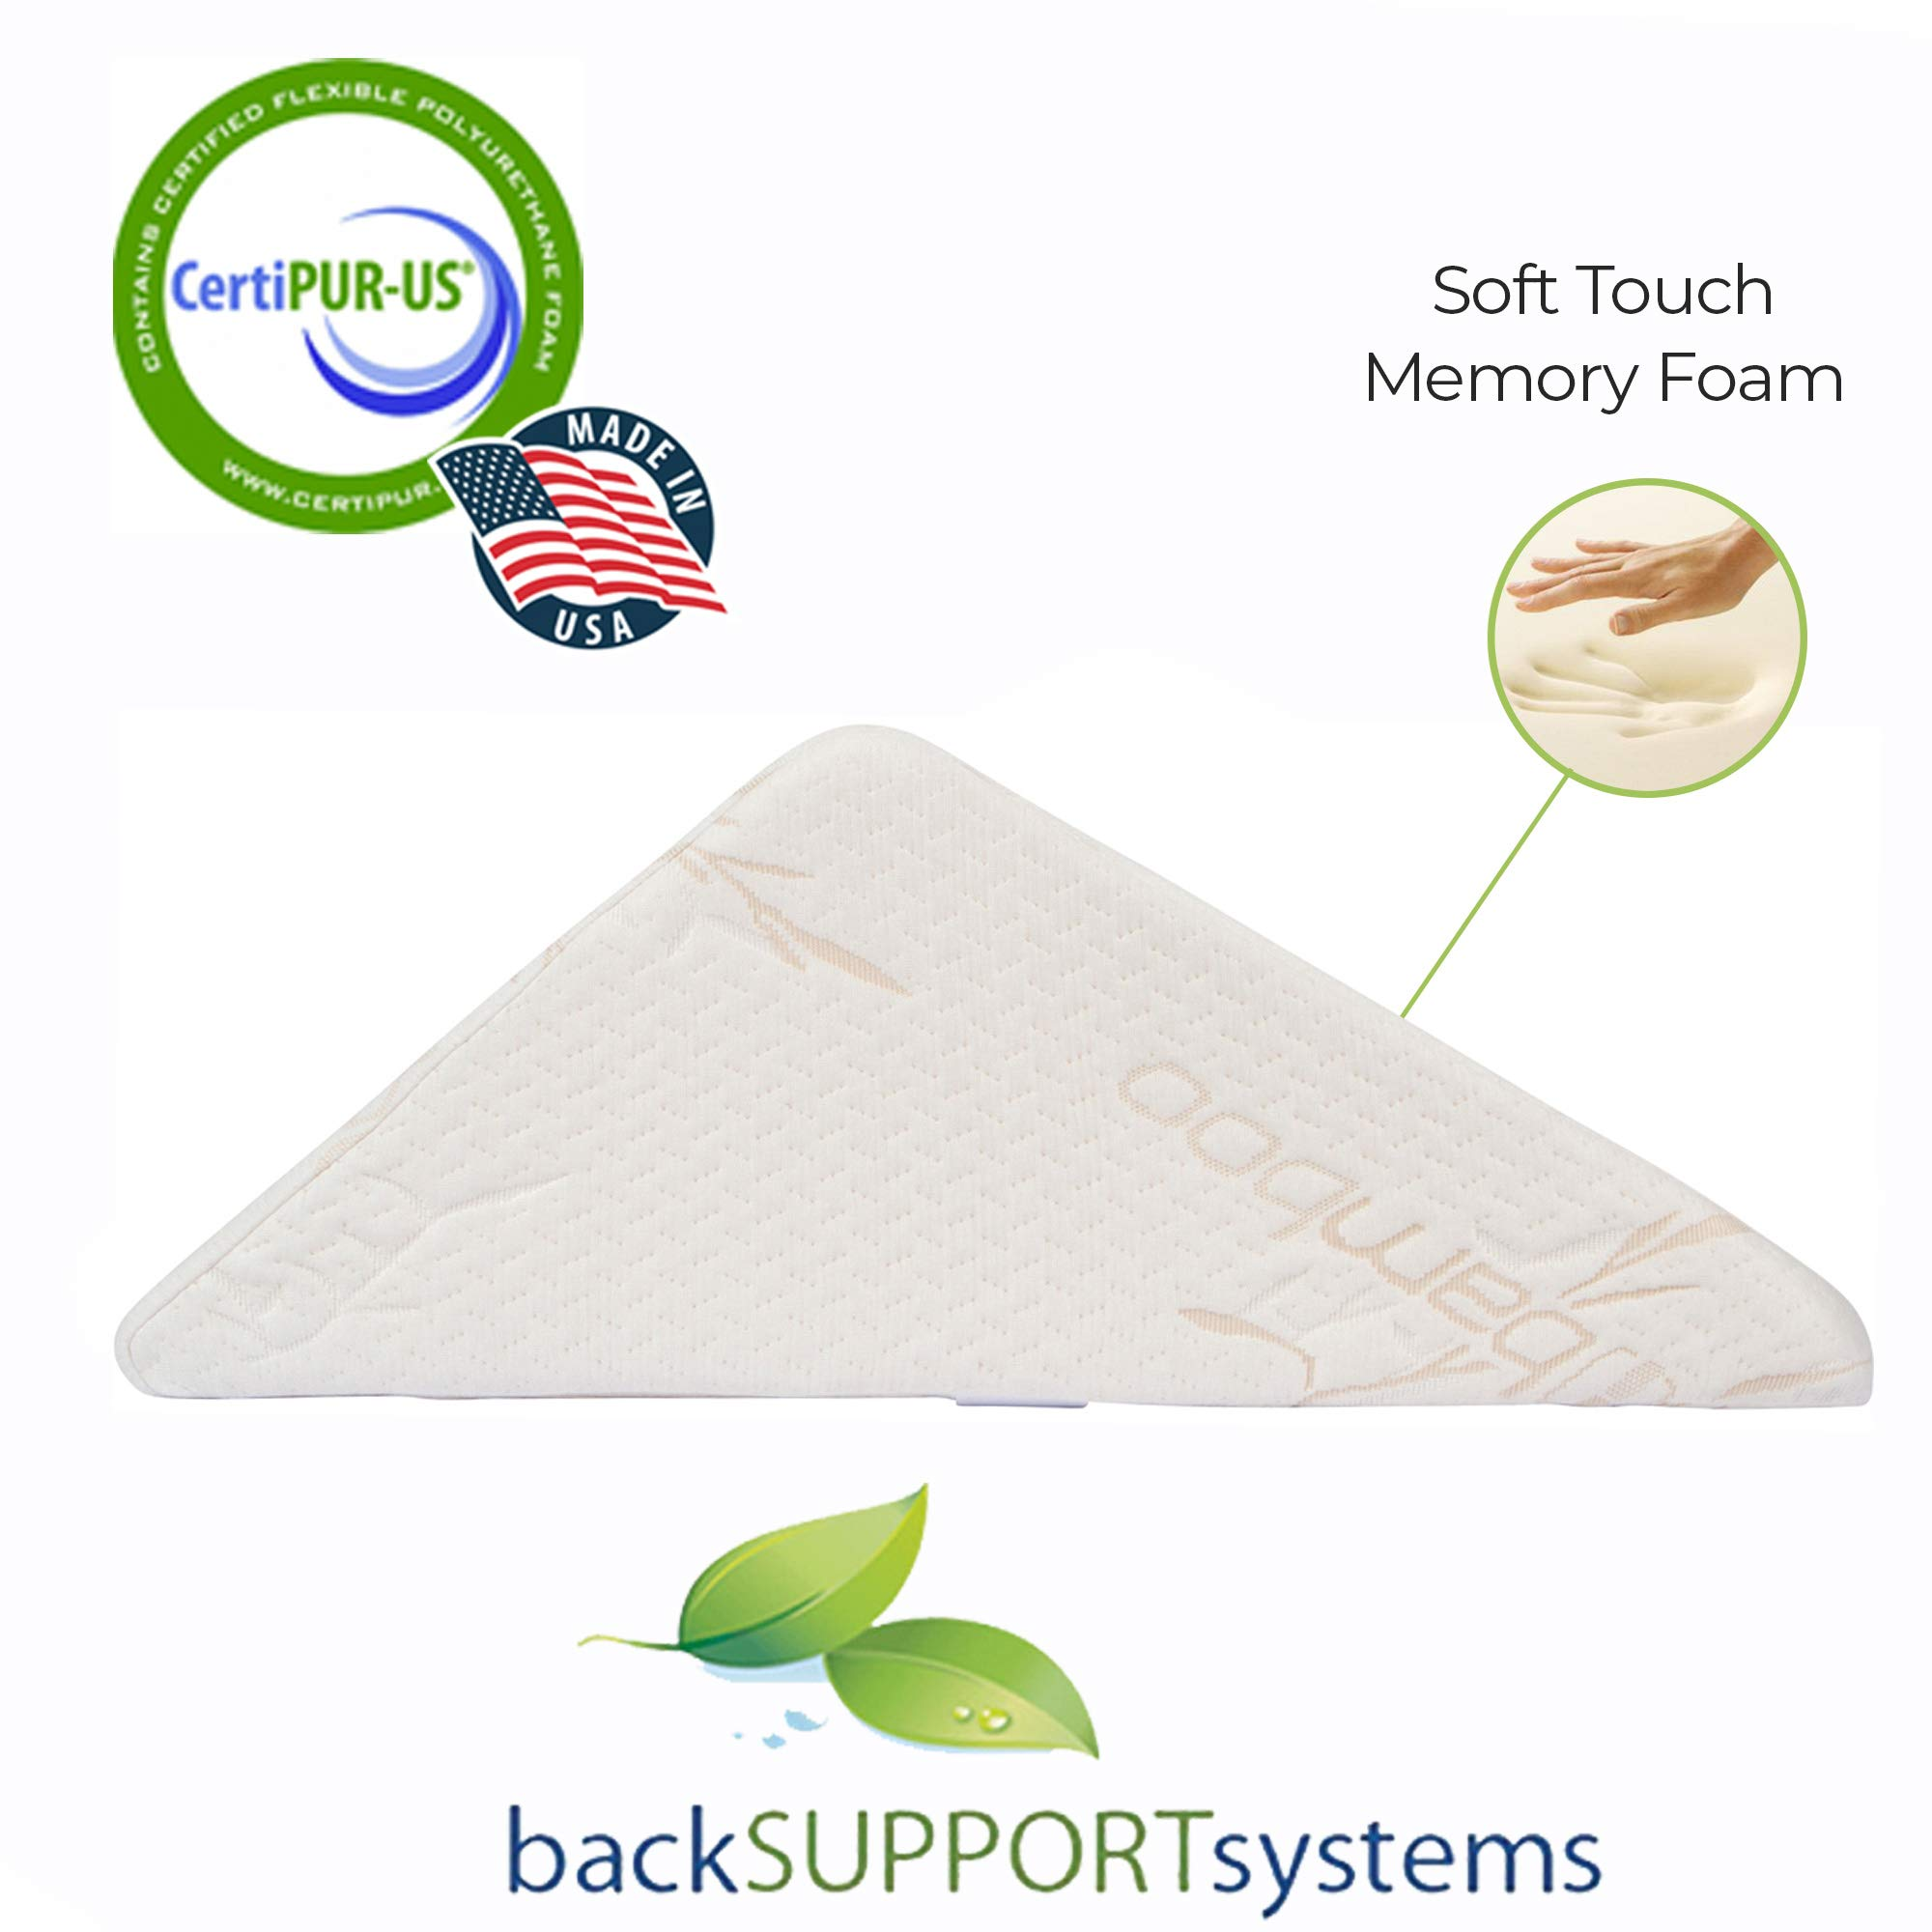 The Angle by Back Support Systems - Guaranteed to Help Reduce Back Pain Immediately. Eco Friendly, Medical Quality Memory Foam Bed Wedge Leg Pillow for Reducing Back Pain, Back Therapy and Sleeping by Back Support Systems (Image #3)